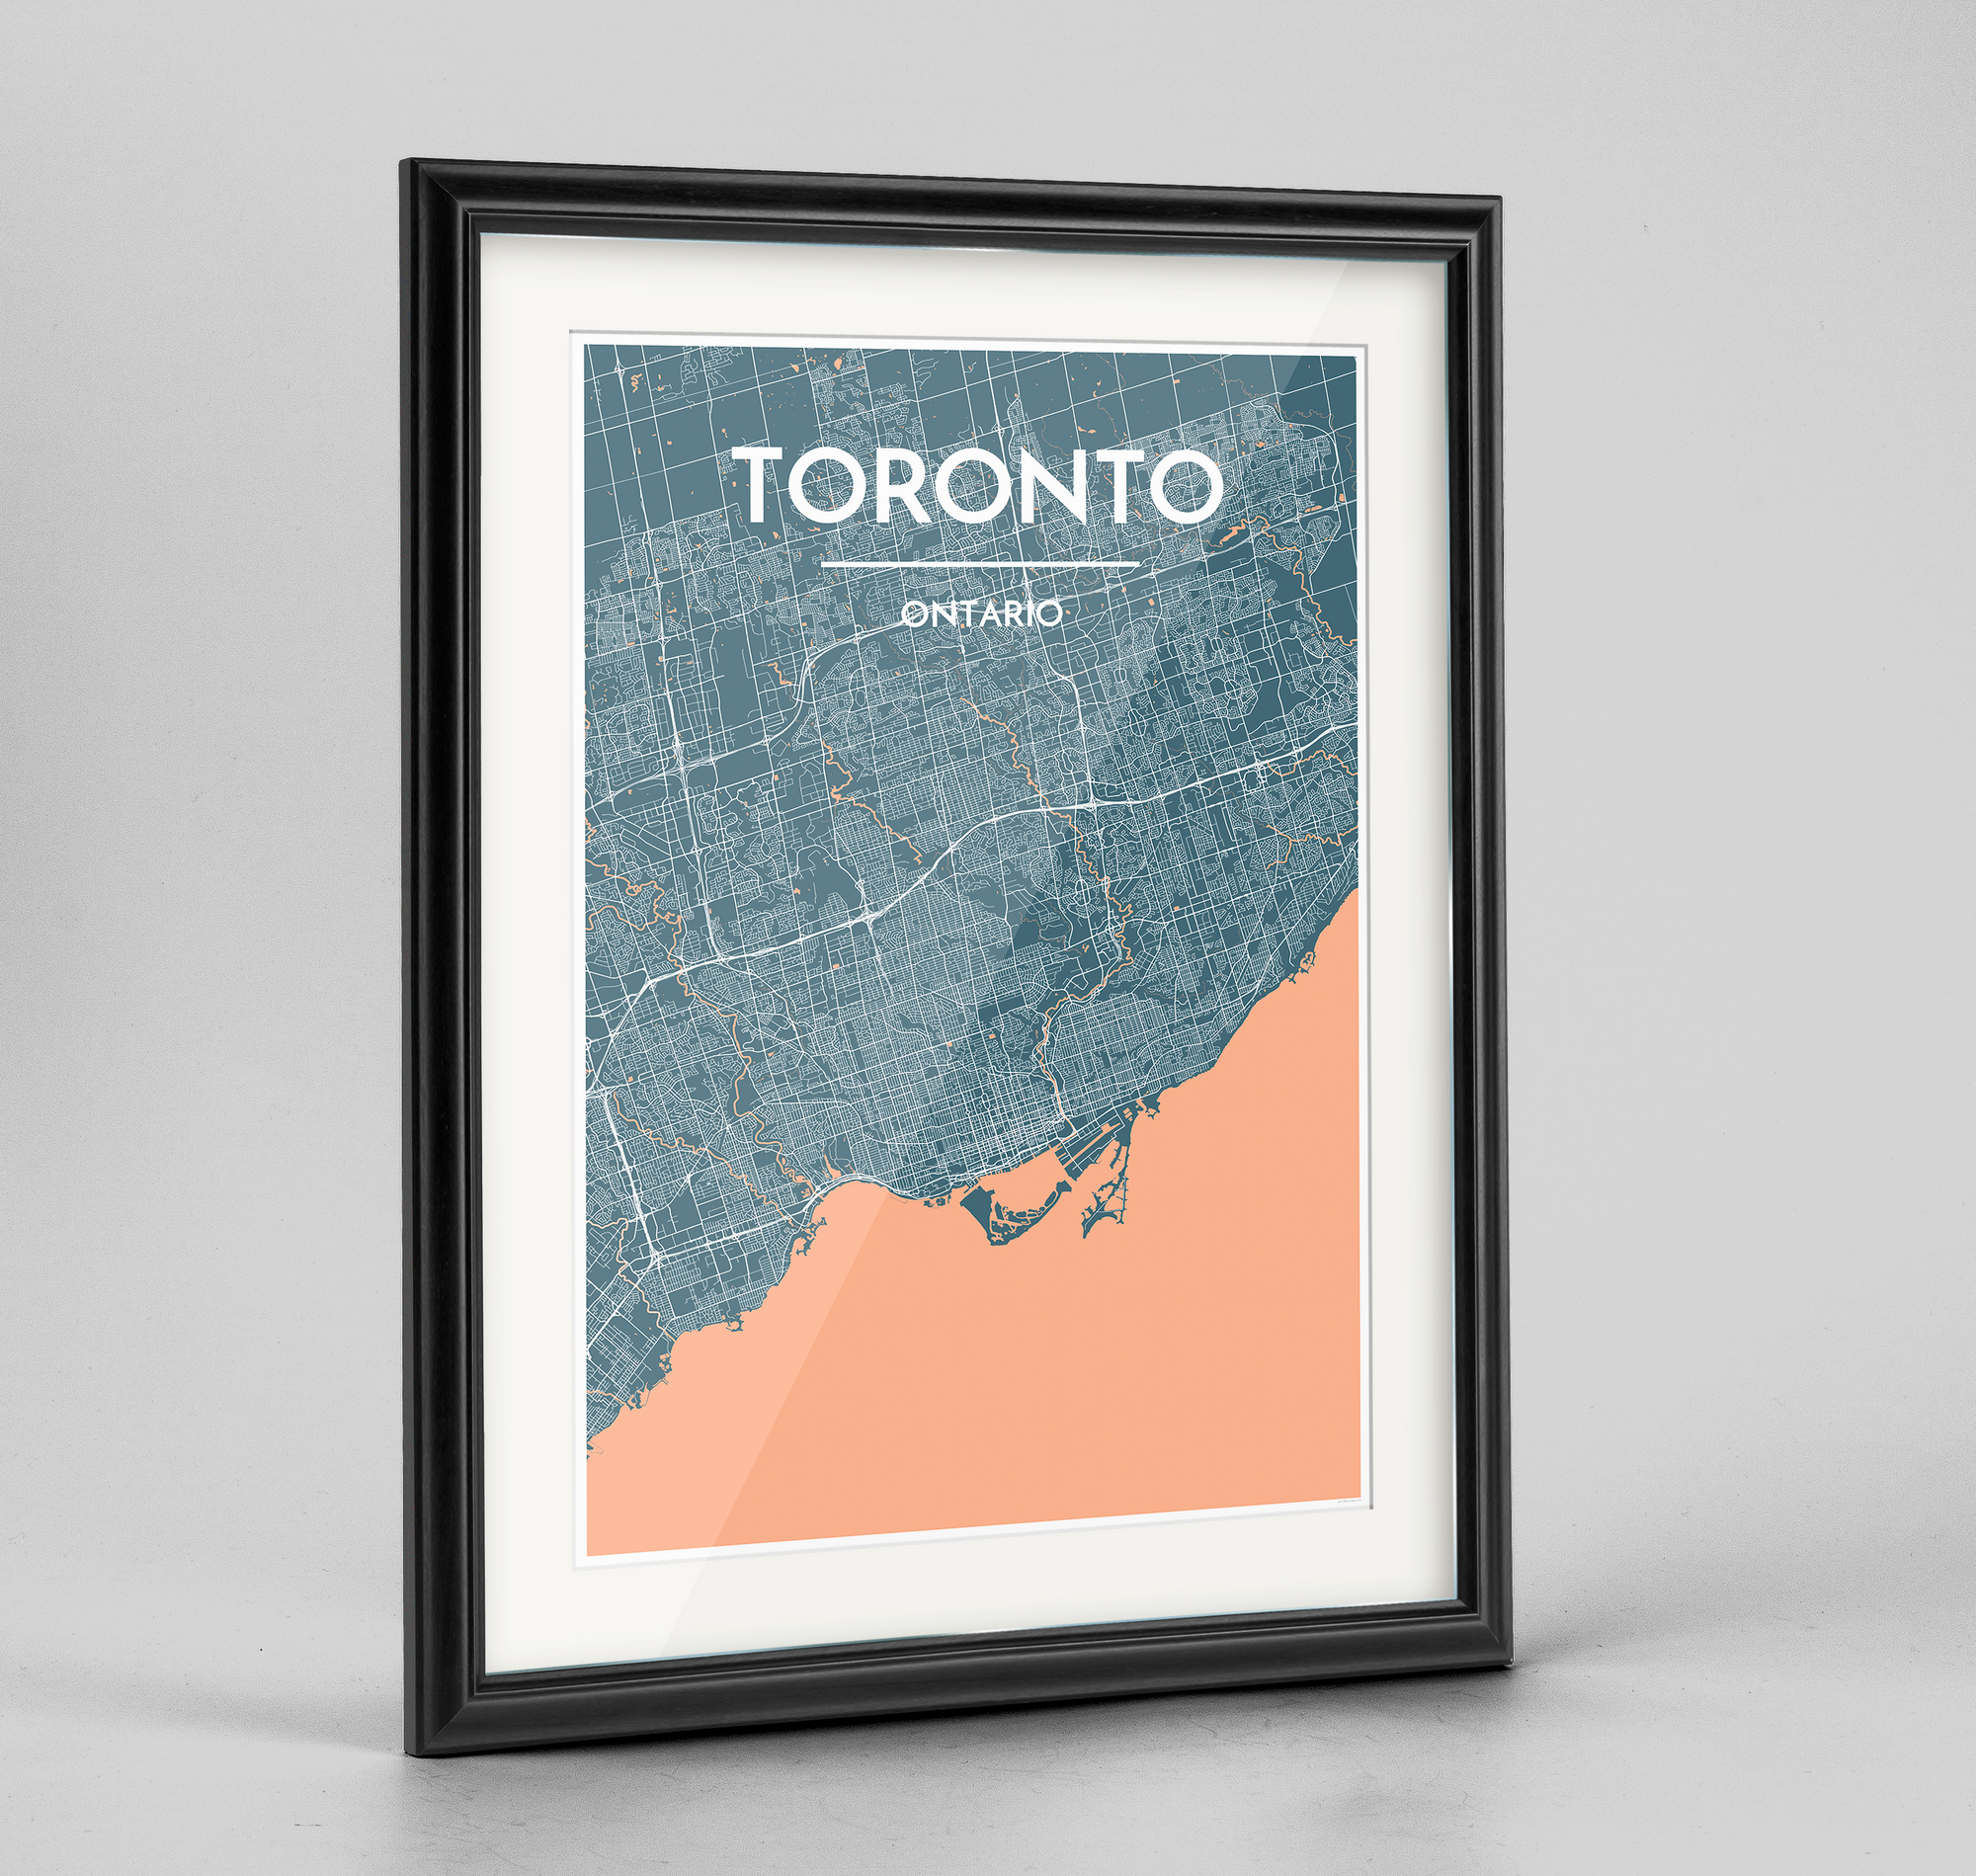 Framed Toronto City Map Art Print - Point Two Design